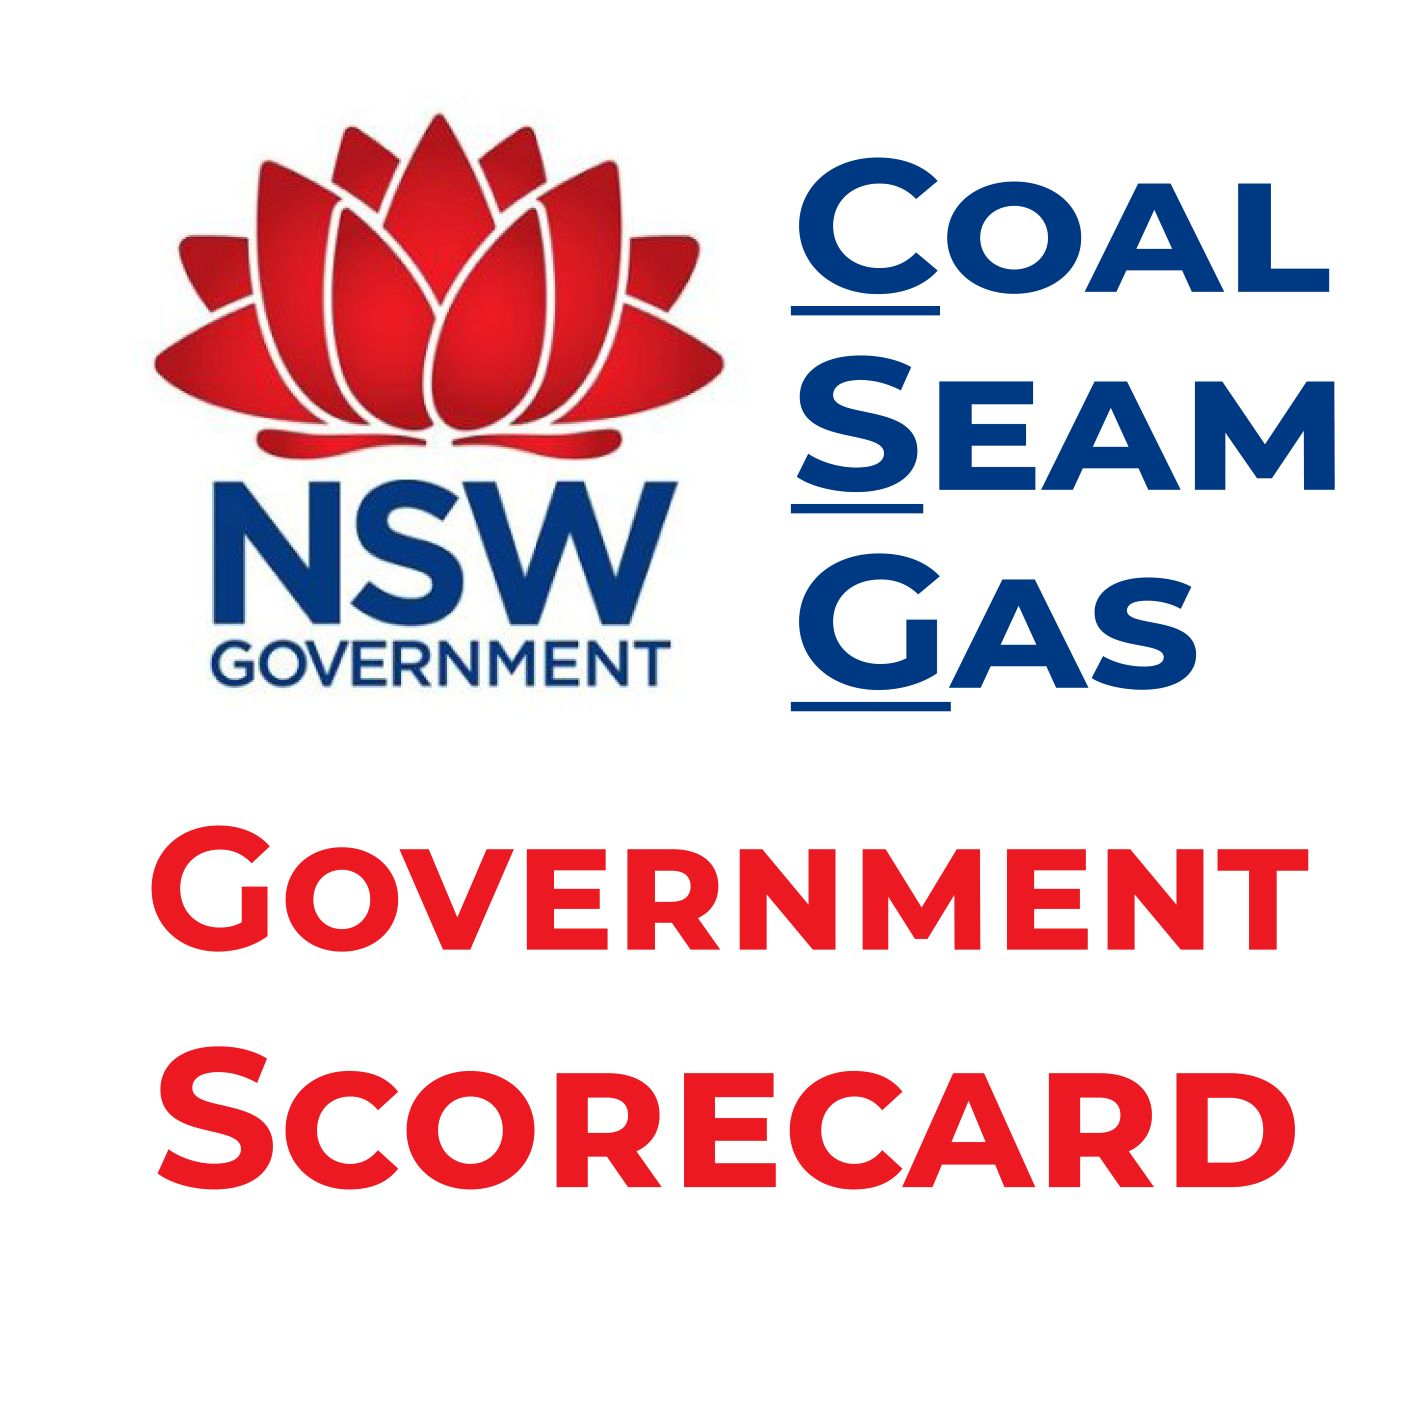 CSG final report released: A moratorium on coal seam gas only response to Government's gas regulation failure